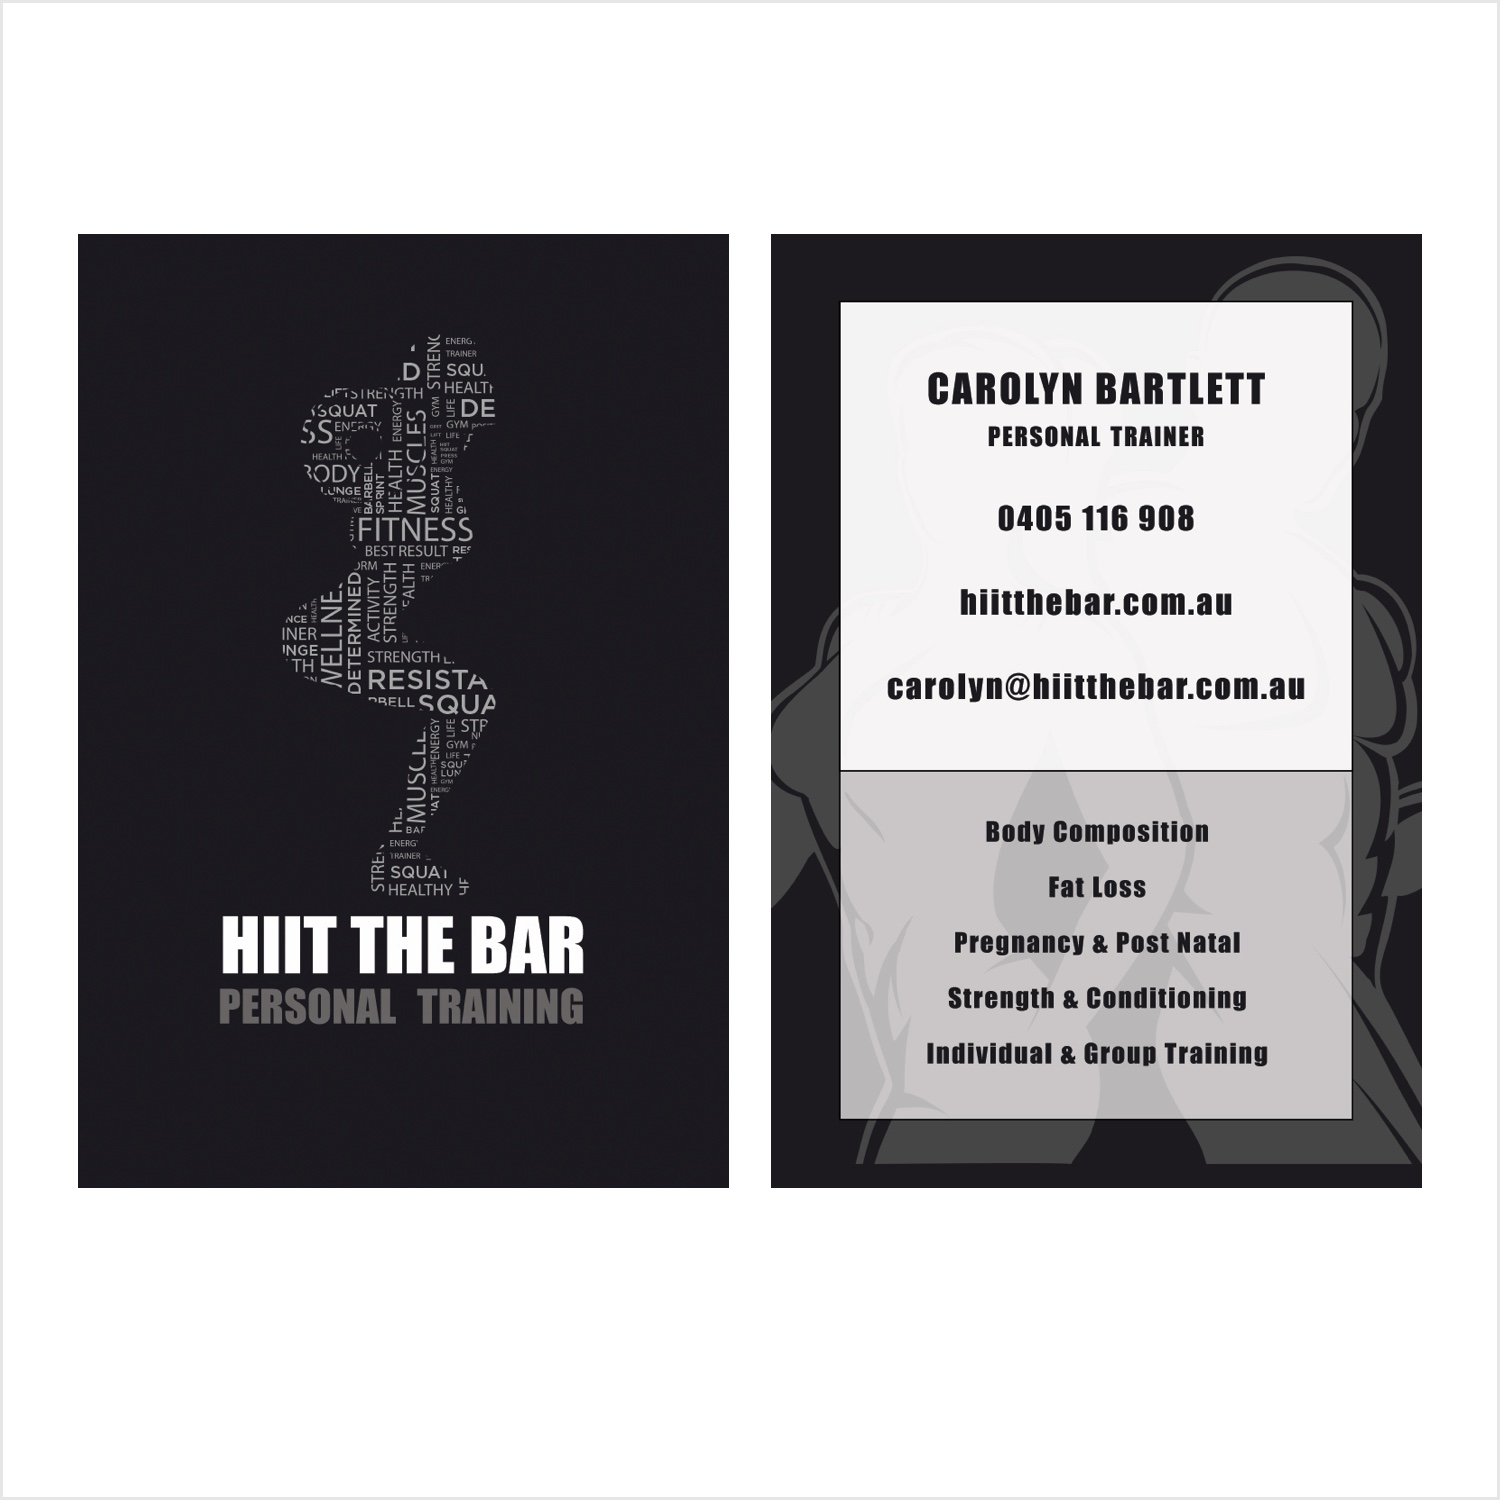 HIIT The Bar, Personal Training